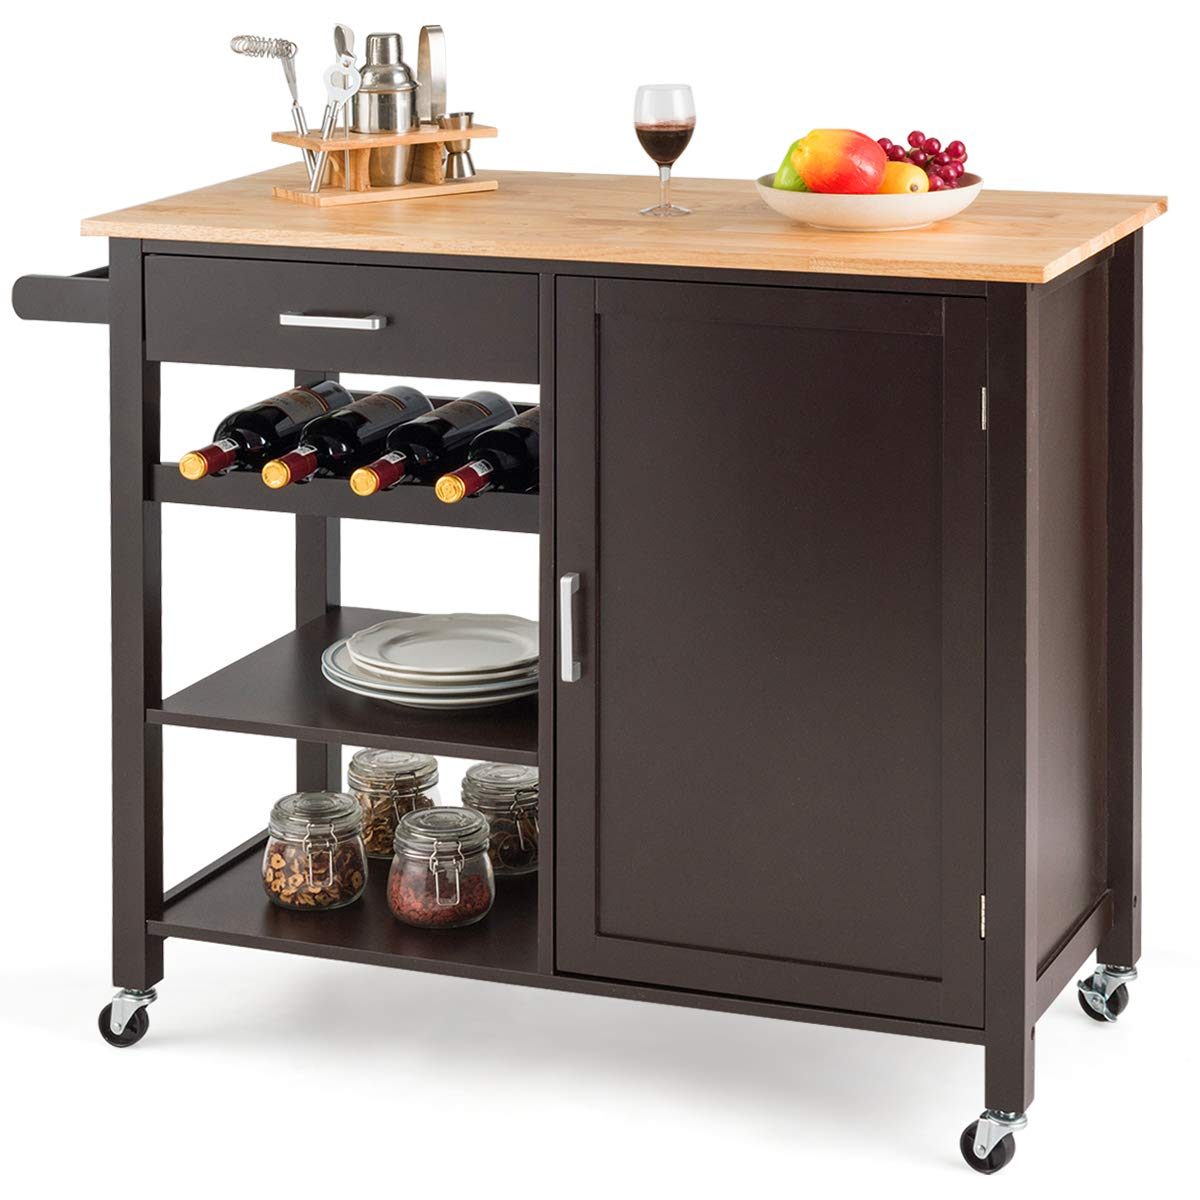 Giantex Kitchen Island Cart Rolling Serving Cart Wood Trolley with Drawer, Storage Cabinet, Wine Bottle Rack, Towel Rack and Lockable Wheels (Brown) by Giantex